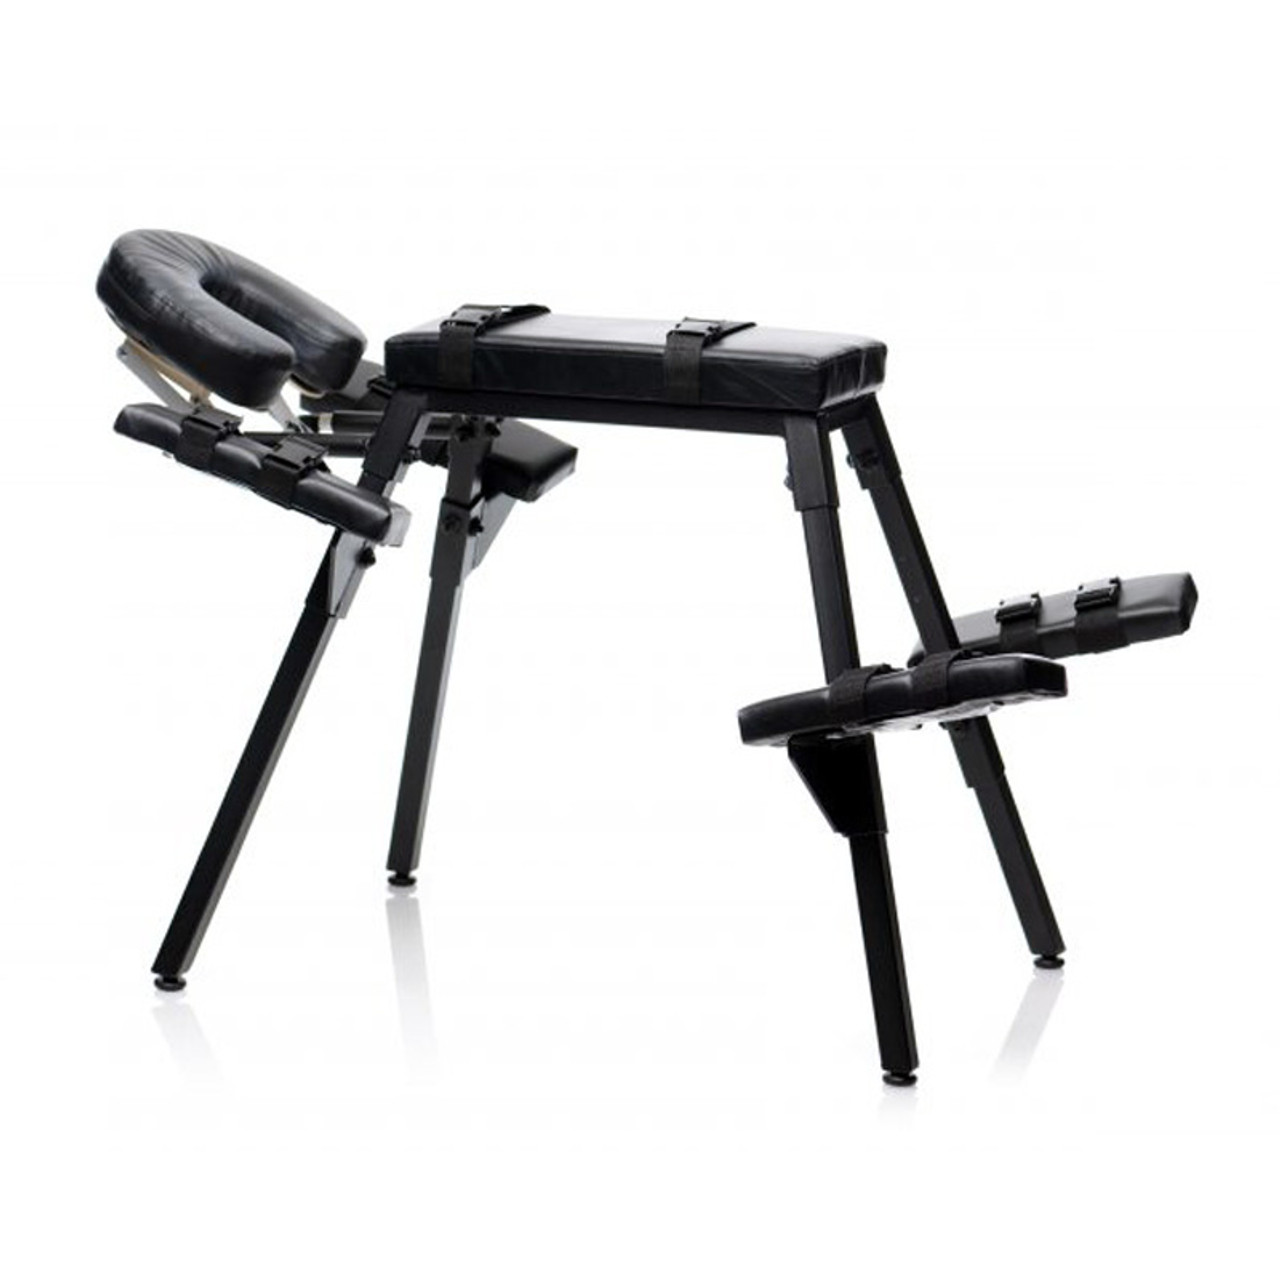 Erotic furniture with restraints